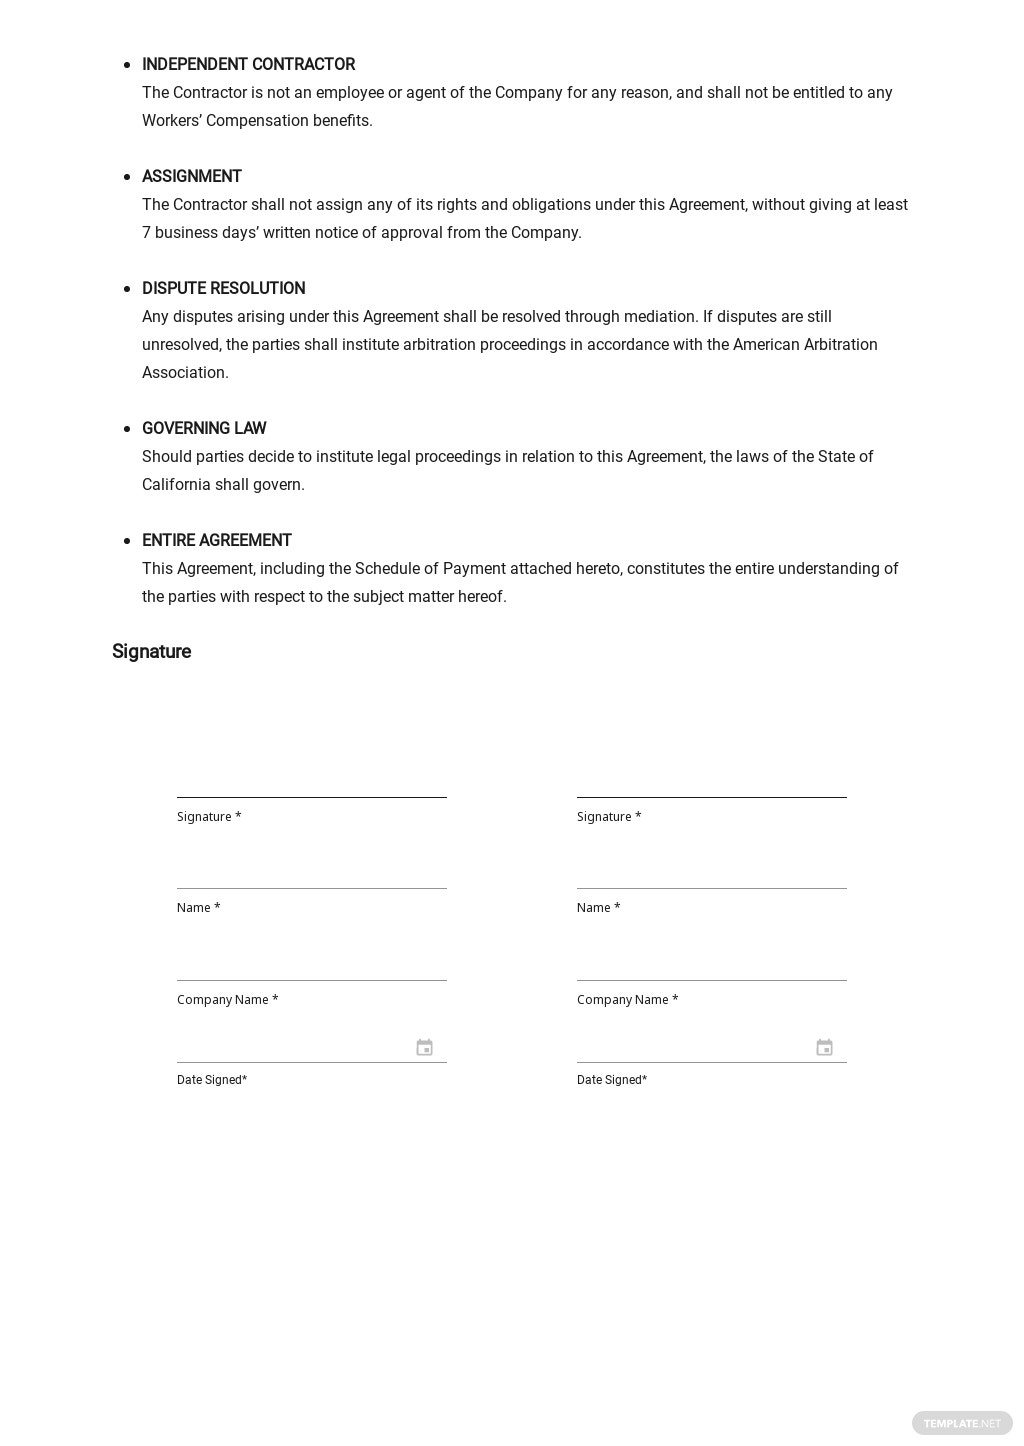 Business Agreement between Two Parties Template 2.jpe